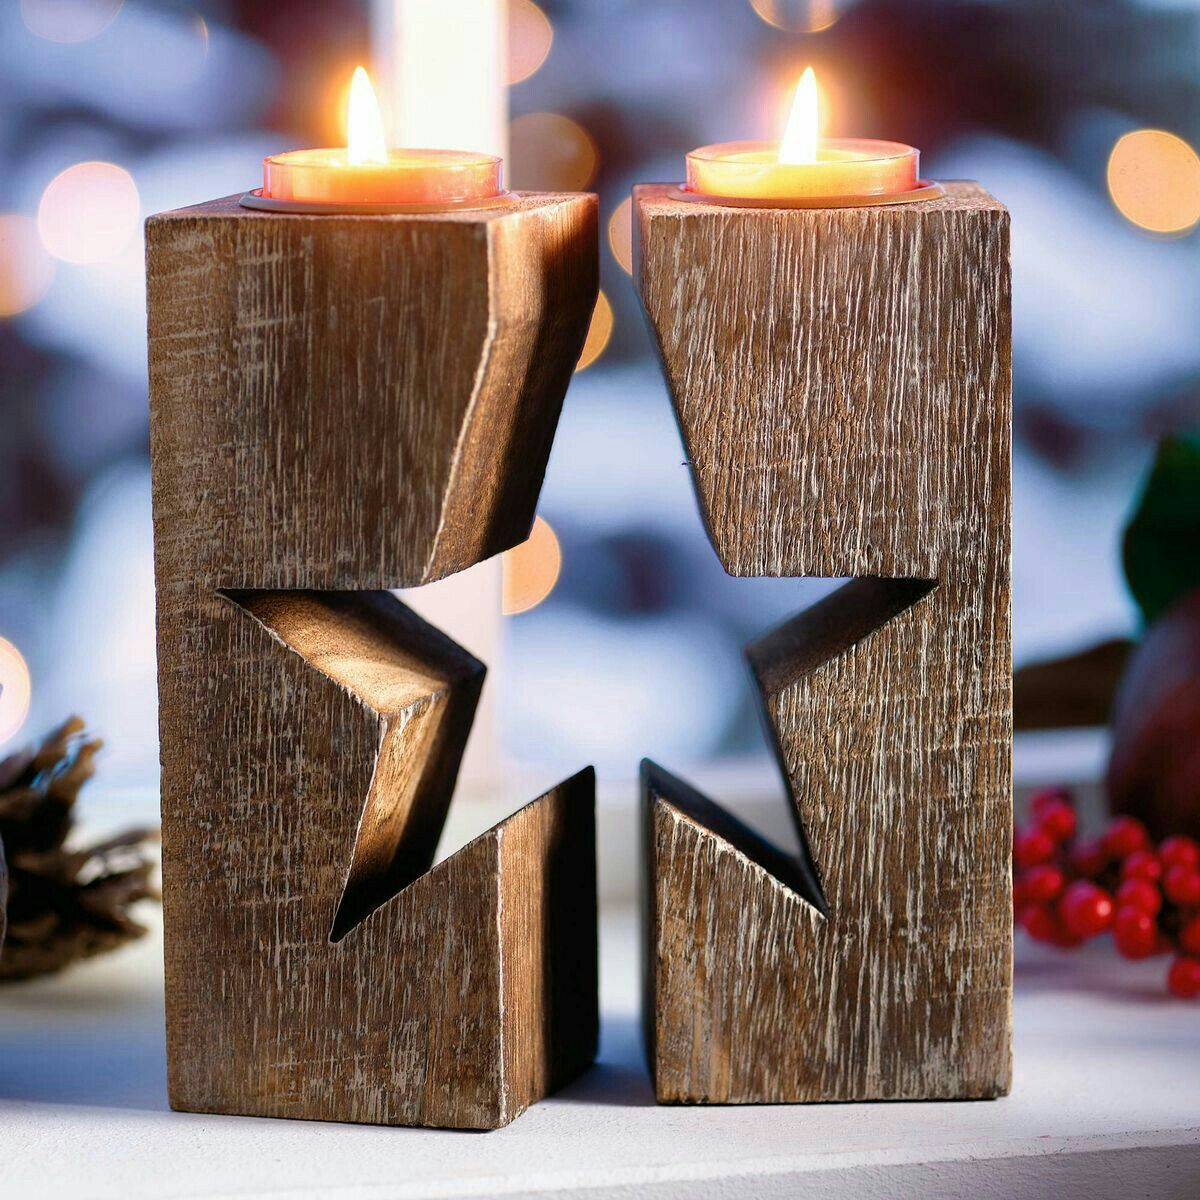 Pin By Cld On Weihnachtszeit Christmas Wood Wood Crafts Christmas Candle Holders